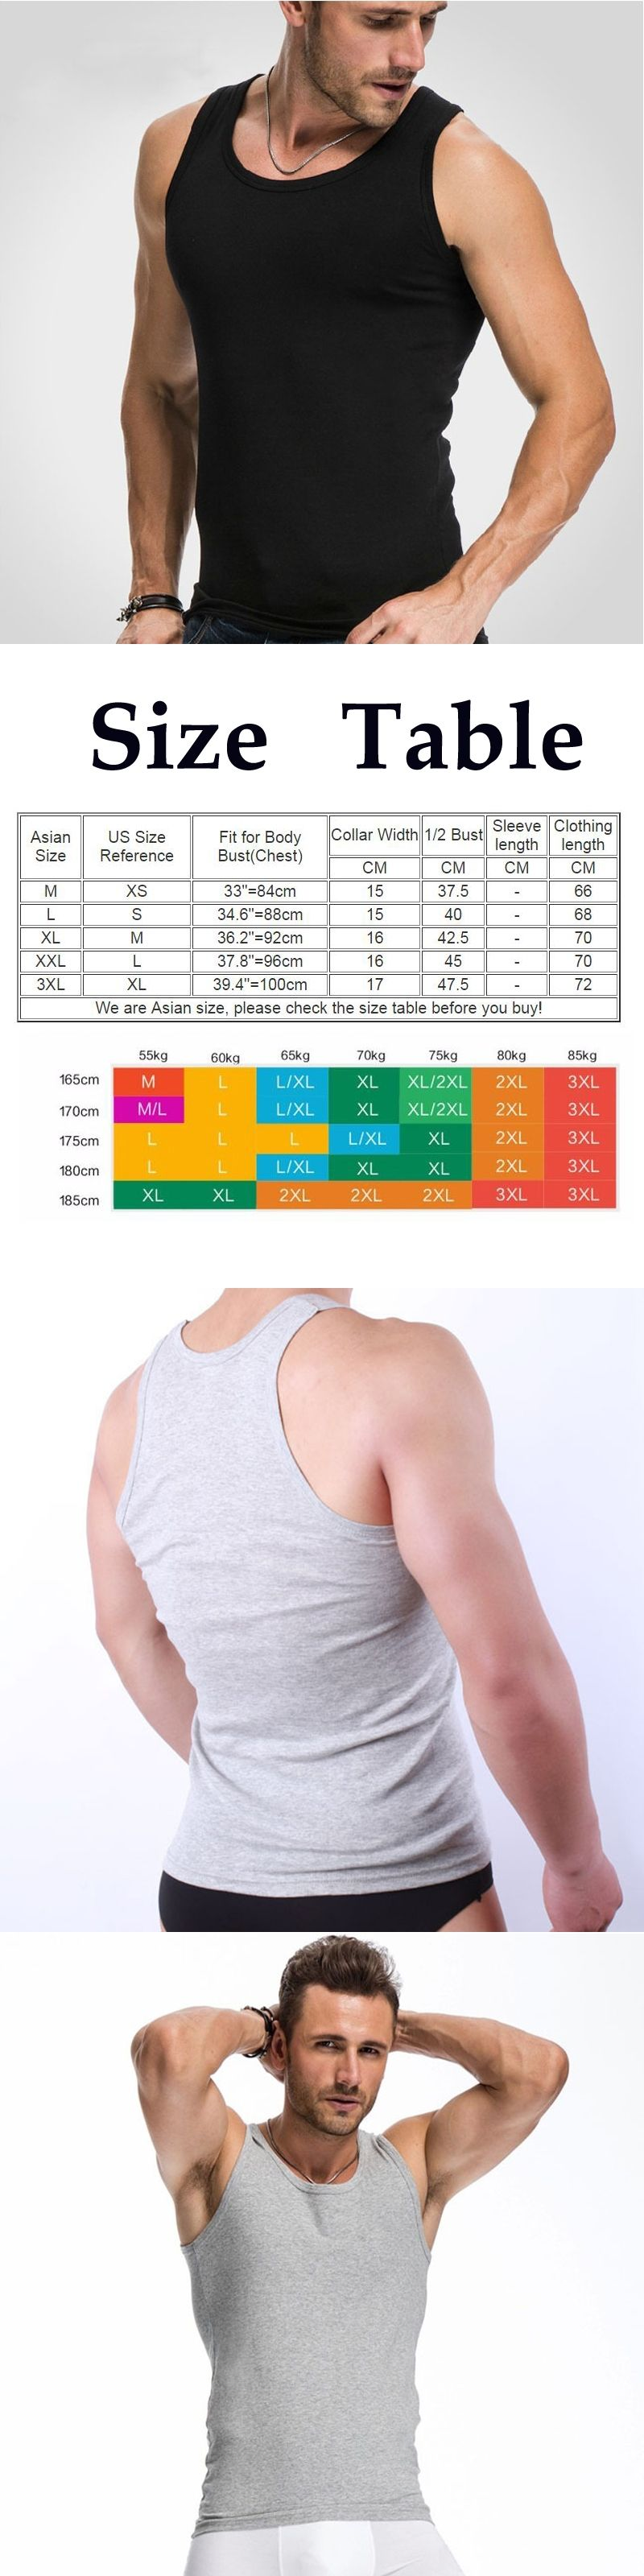 7c563368ecb07 2017 Summer Solid Color Cotton Tank Top Fitness Men clothing Sexy  Sleeveless O-neck T